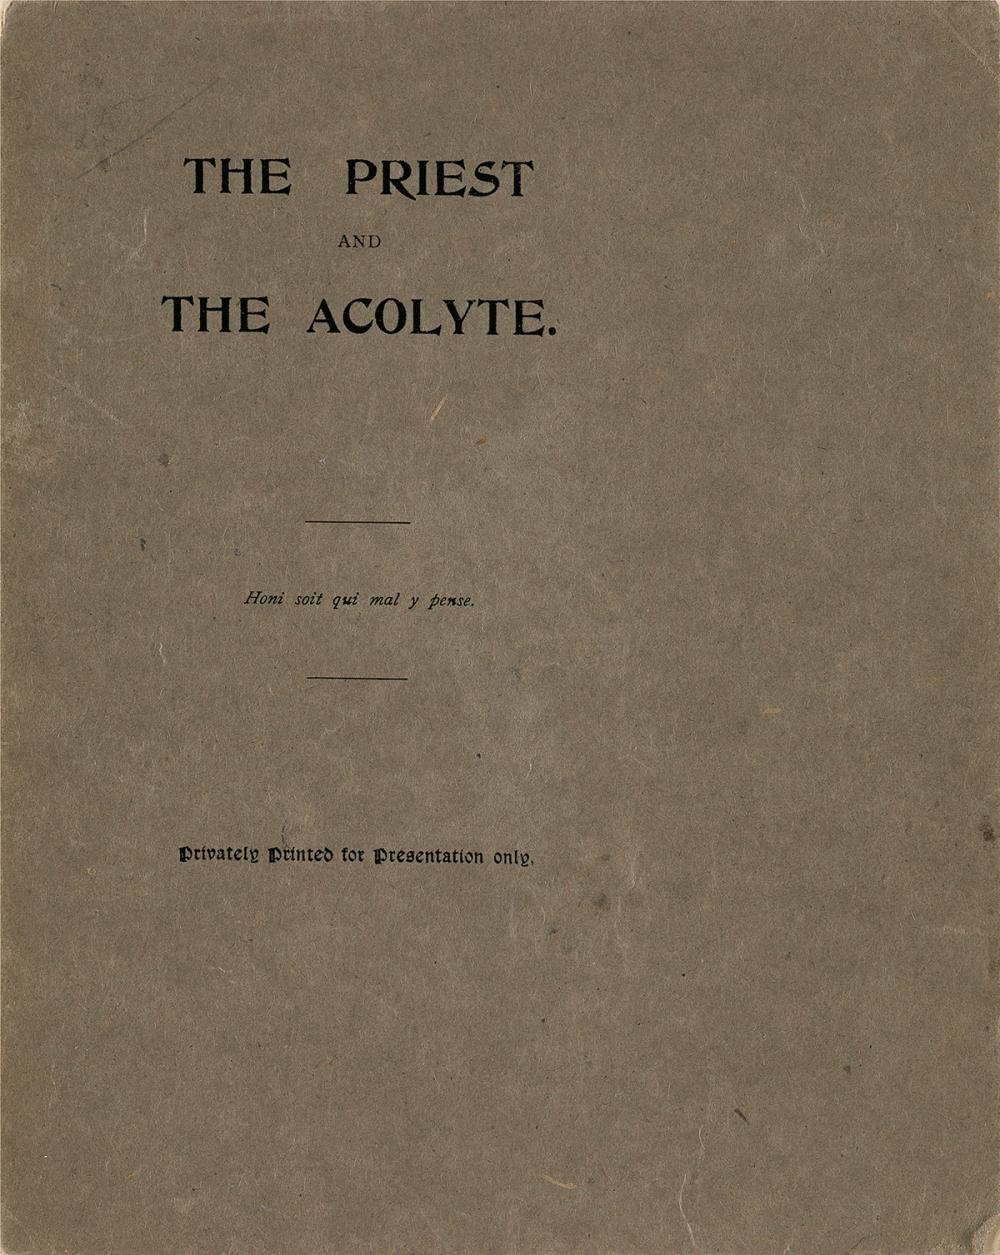 OSCAR WILDE (1854-1900)  The Priest and the Acolyte * The Harlot's House.